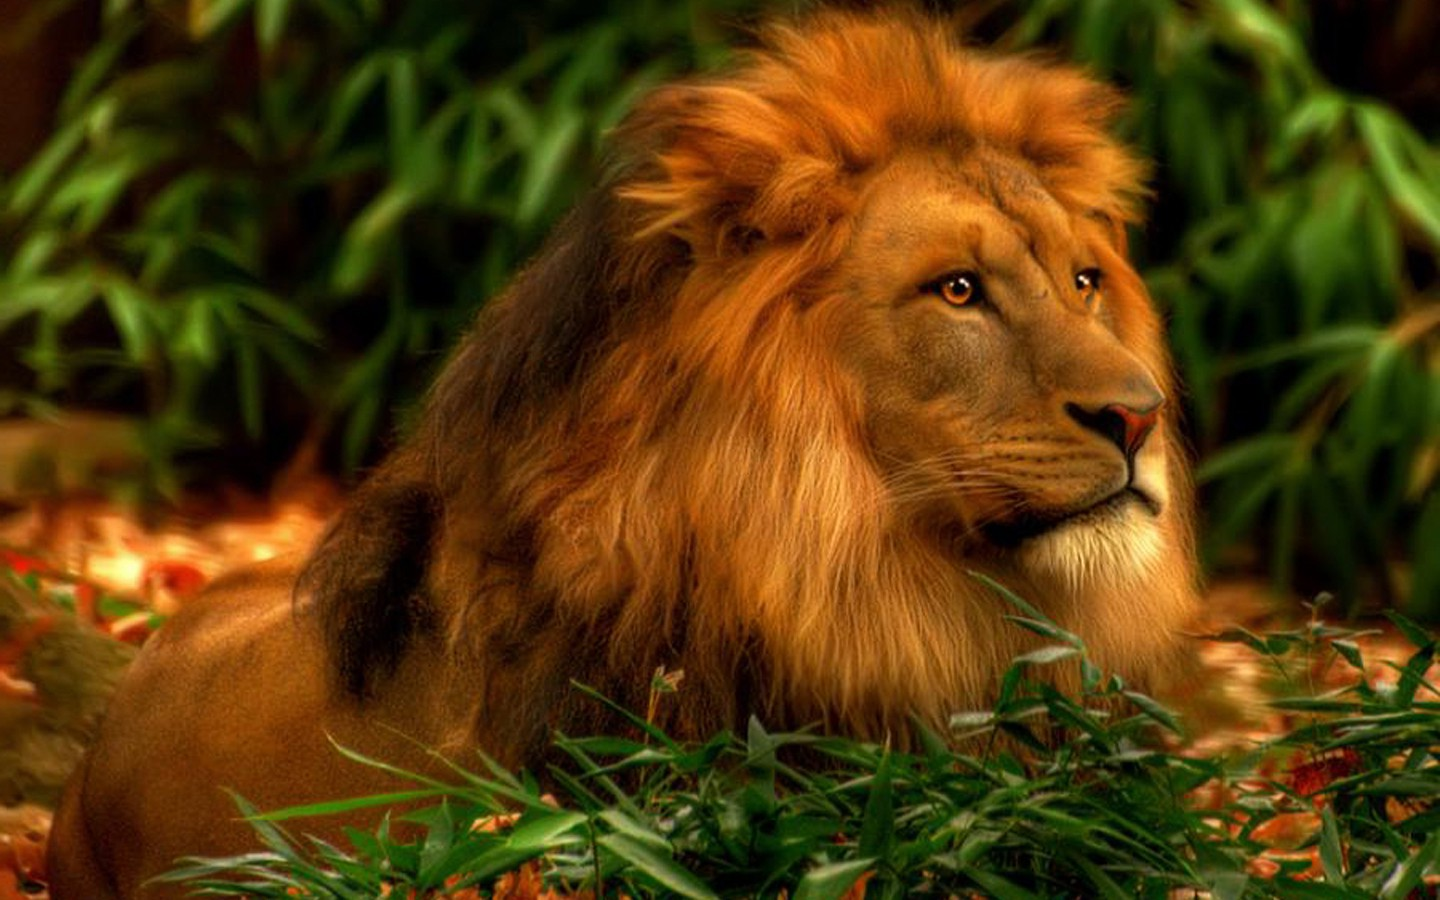 44 black lion hd wallpaper on wallpapersafari - Best animal wallpaper download ...